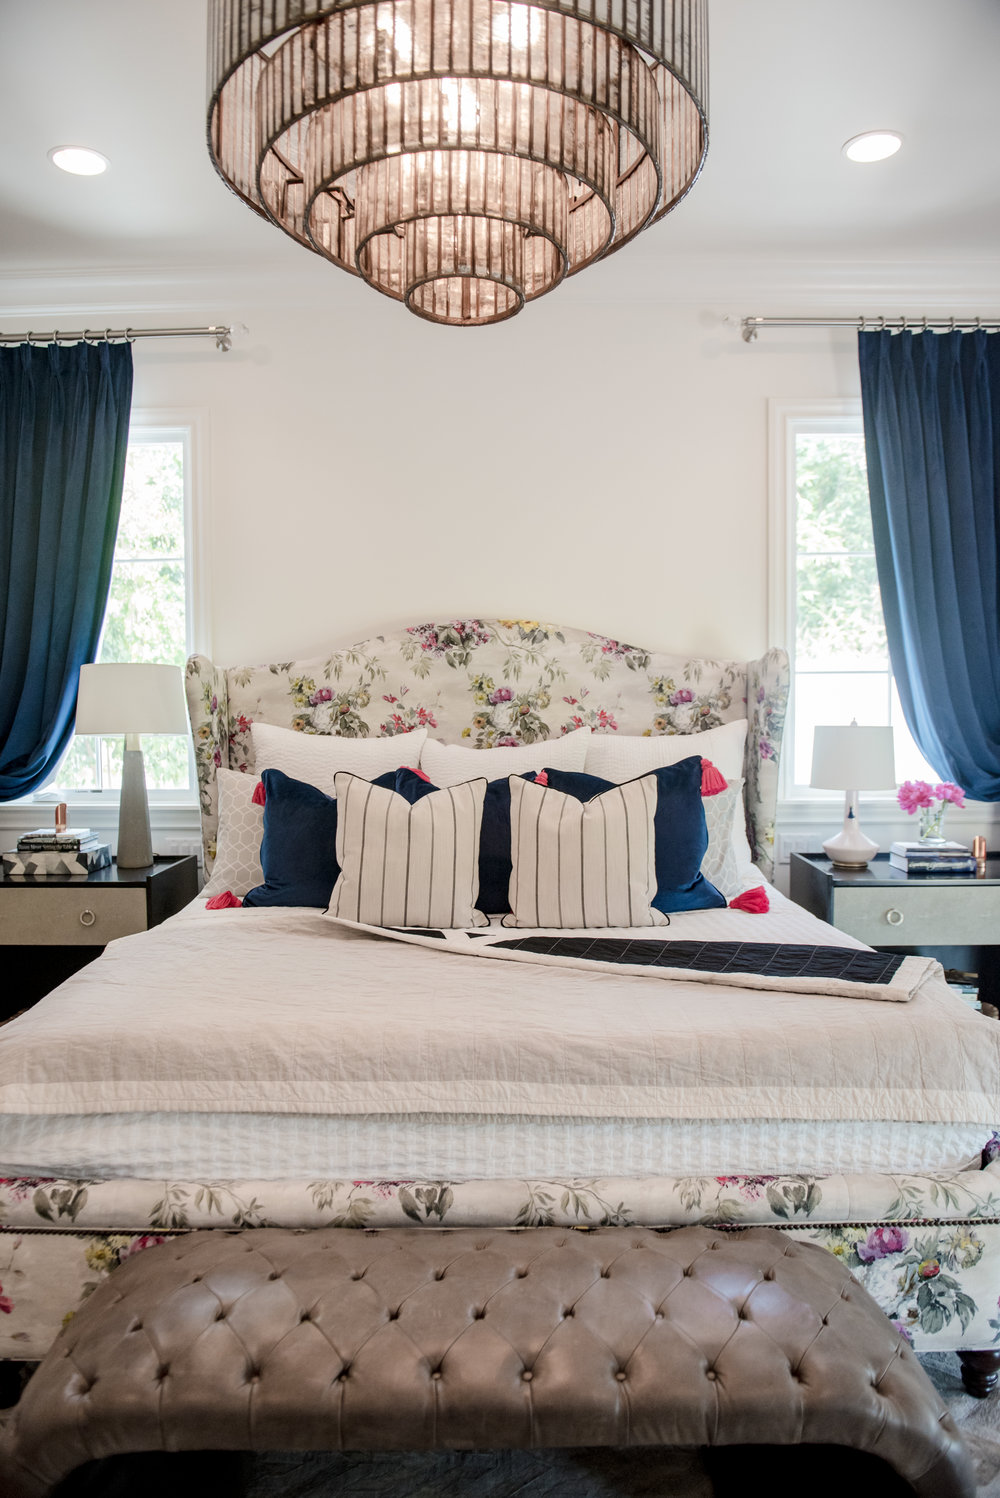 65+Master+Bedroom+Traditional+Floral+Custom+Artwork+Scottsdale+Drapery+Restorationhardware+Crystal.jpg